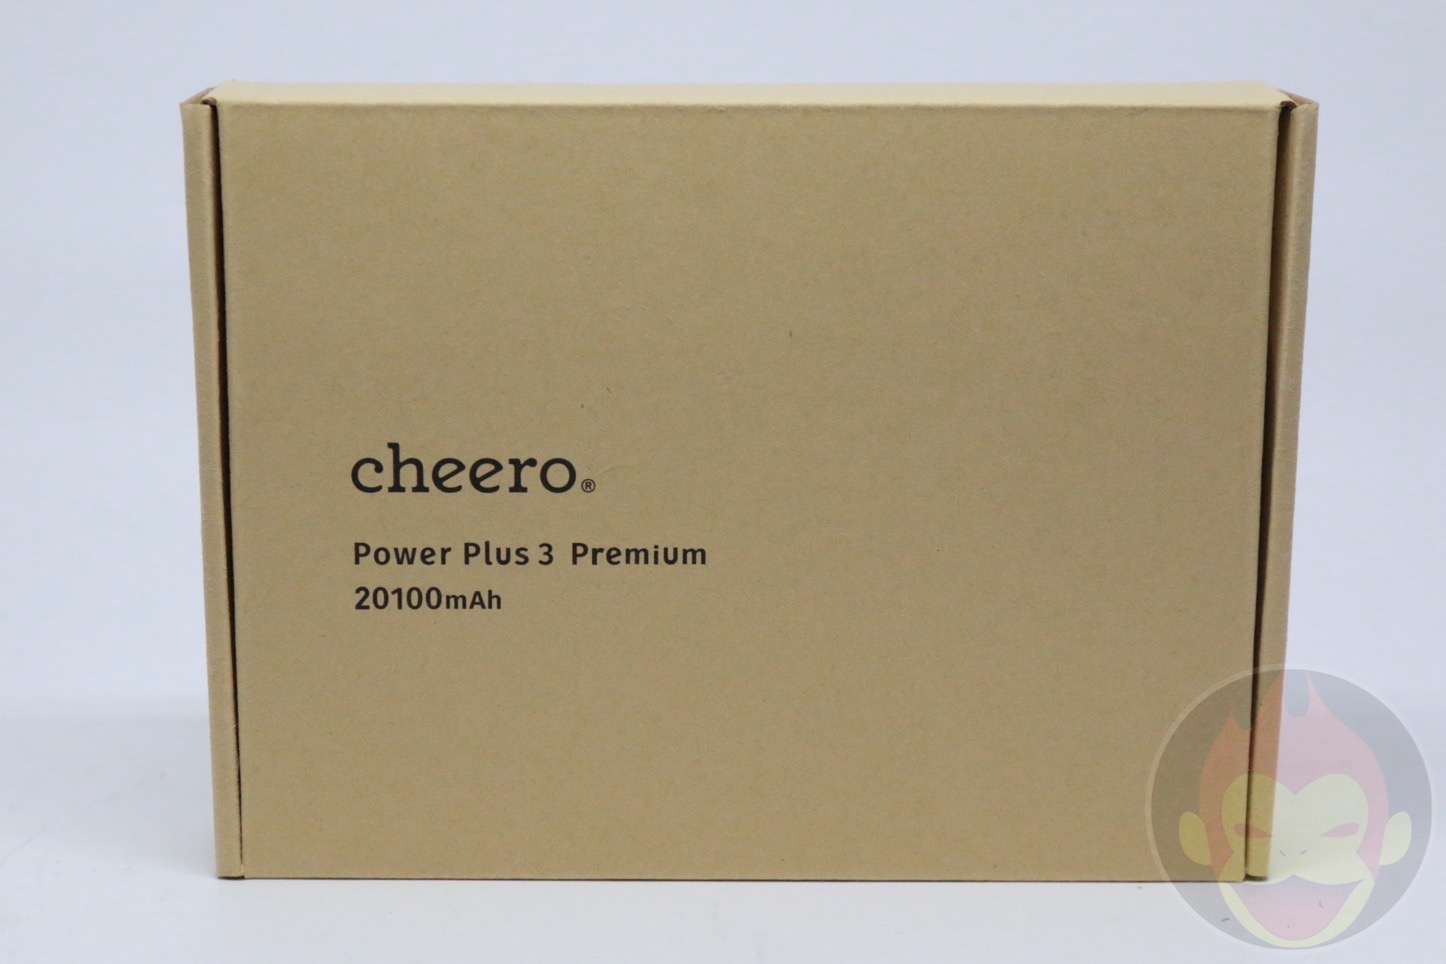 cheero-Power-Plus-3-Premium-20100-12.jpg